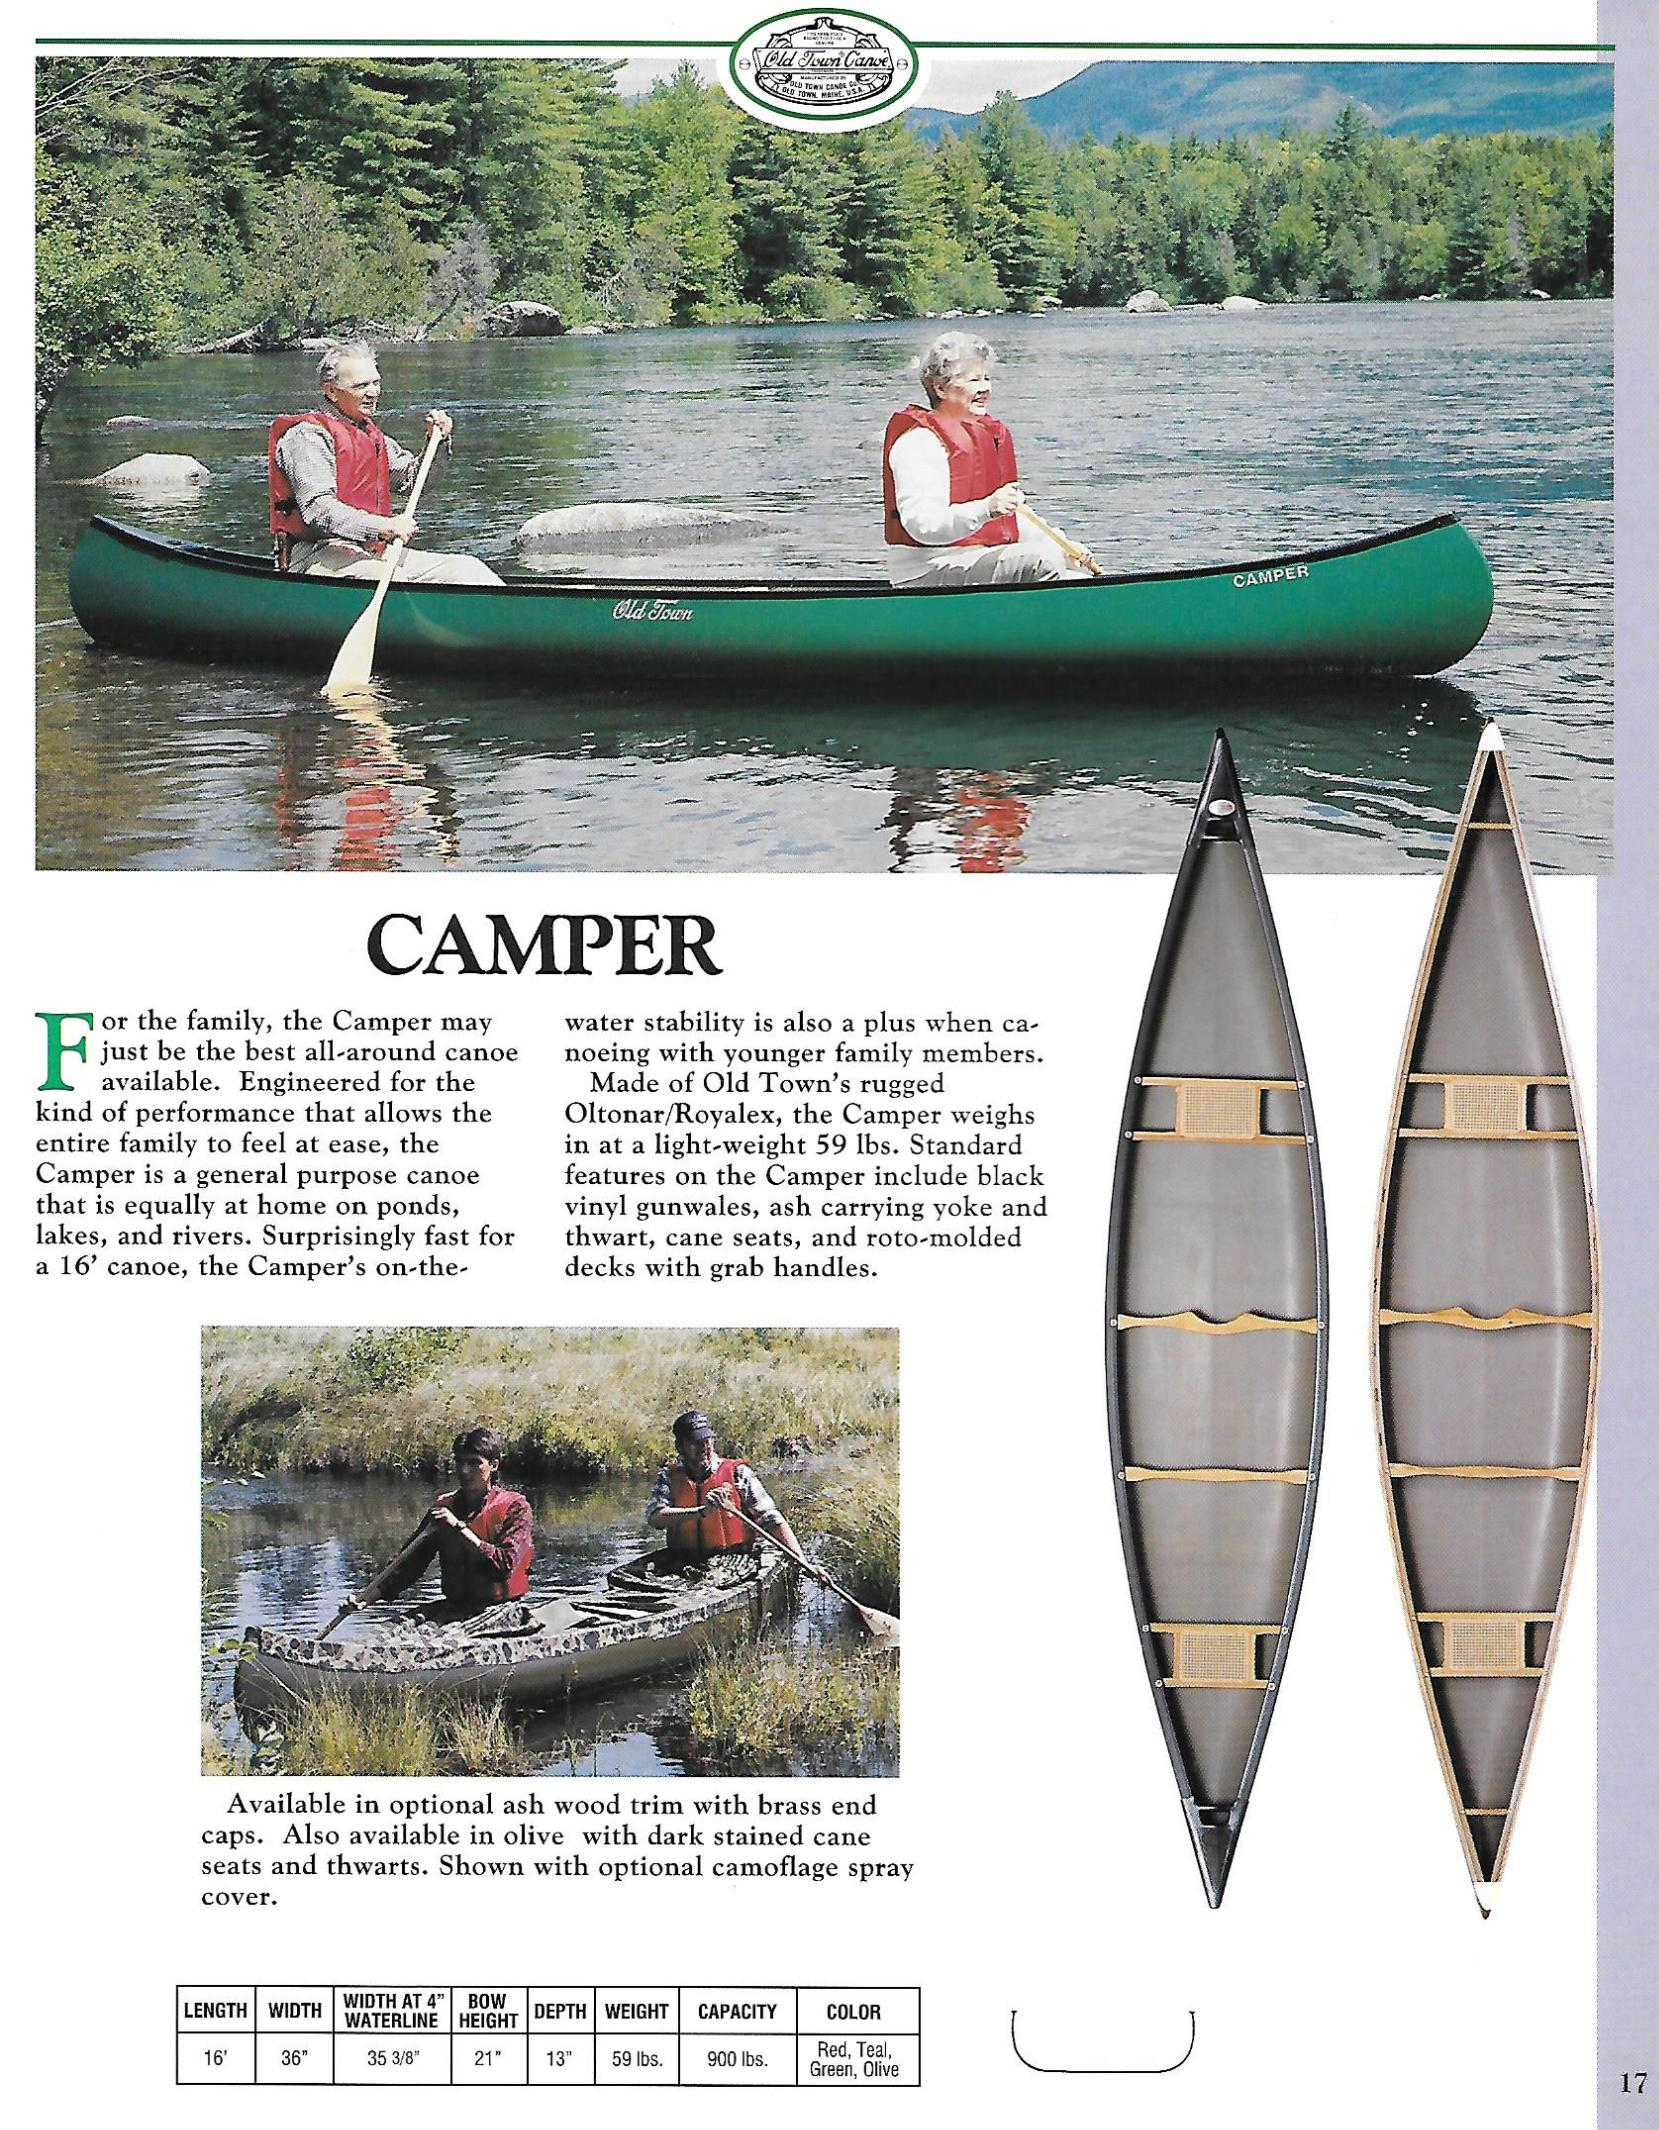 Old Town Camper-1994 Catalog page